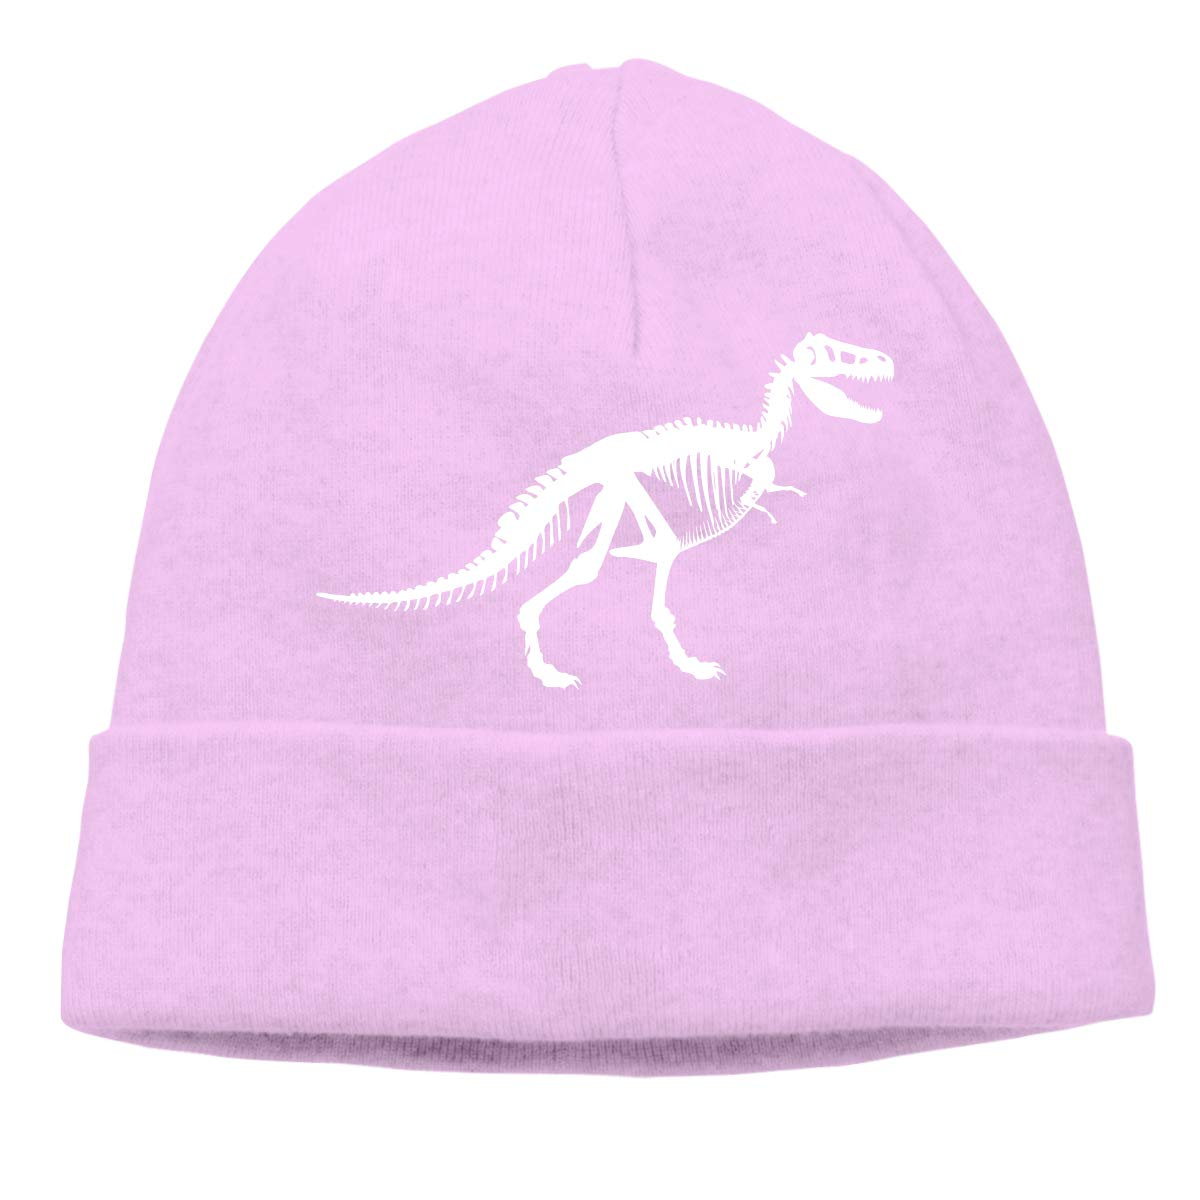 T Rex Skeleton-1 Men /& Women Thick Sports Beanie Skull Cap